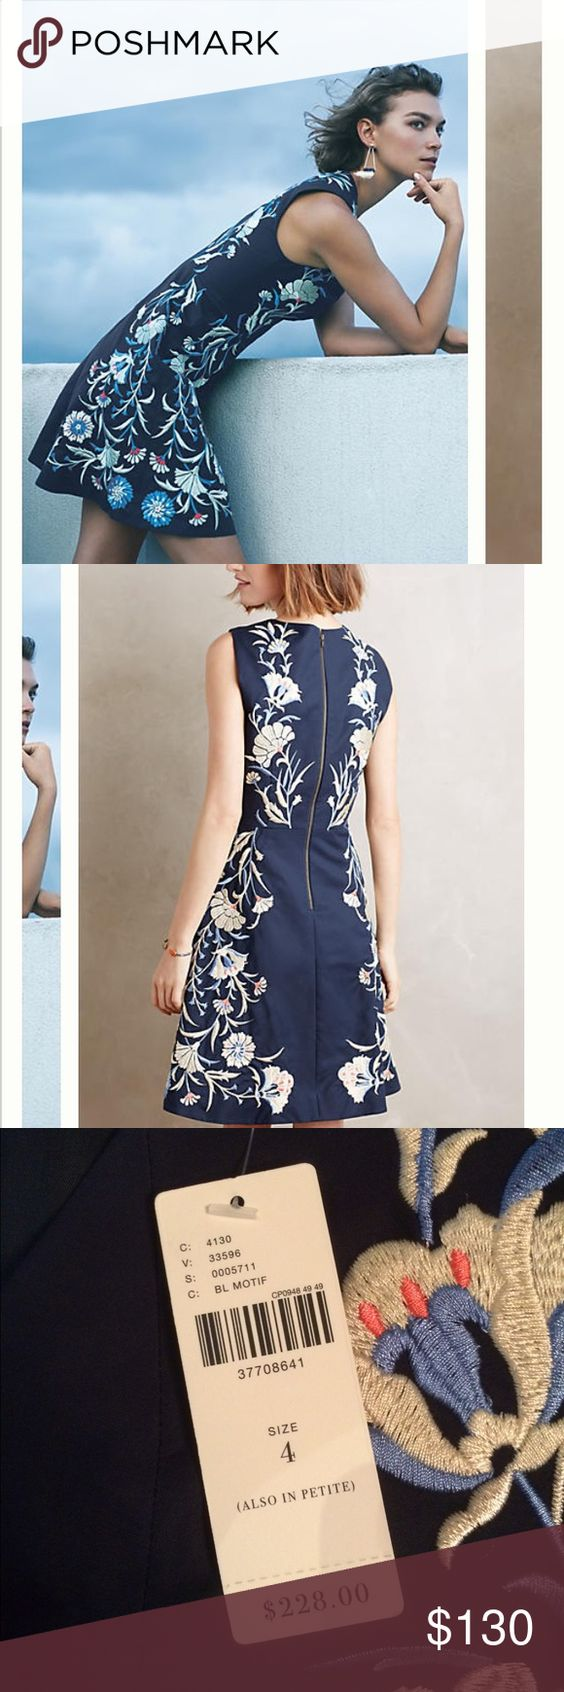 Moulinette Soeurs embroidered navy dress NWT sz 4 NWT. I love this dress but kept it in a different size. Again, didn't return in time so selling here. Anthropologie Dresses Mini